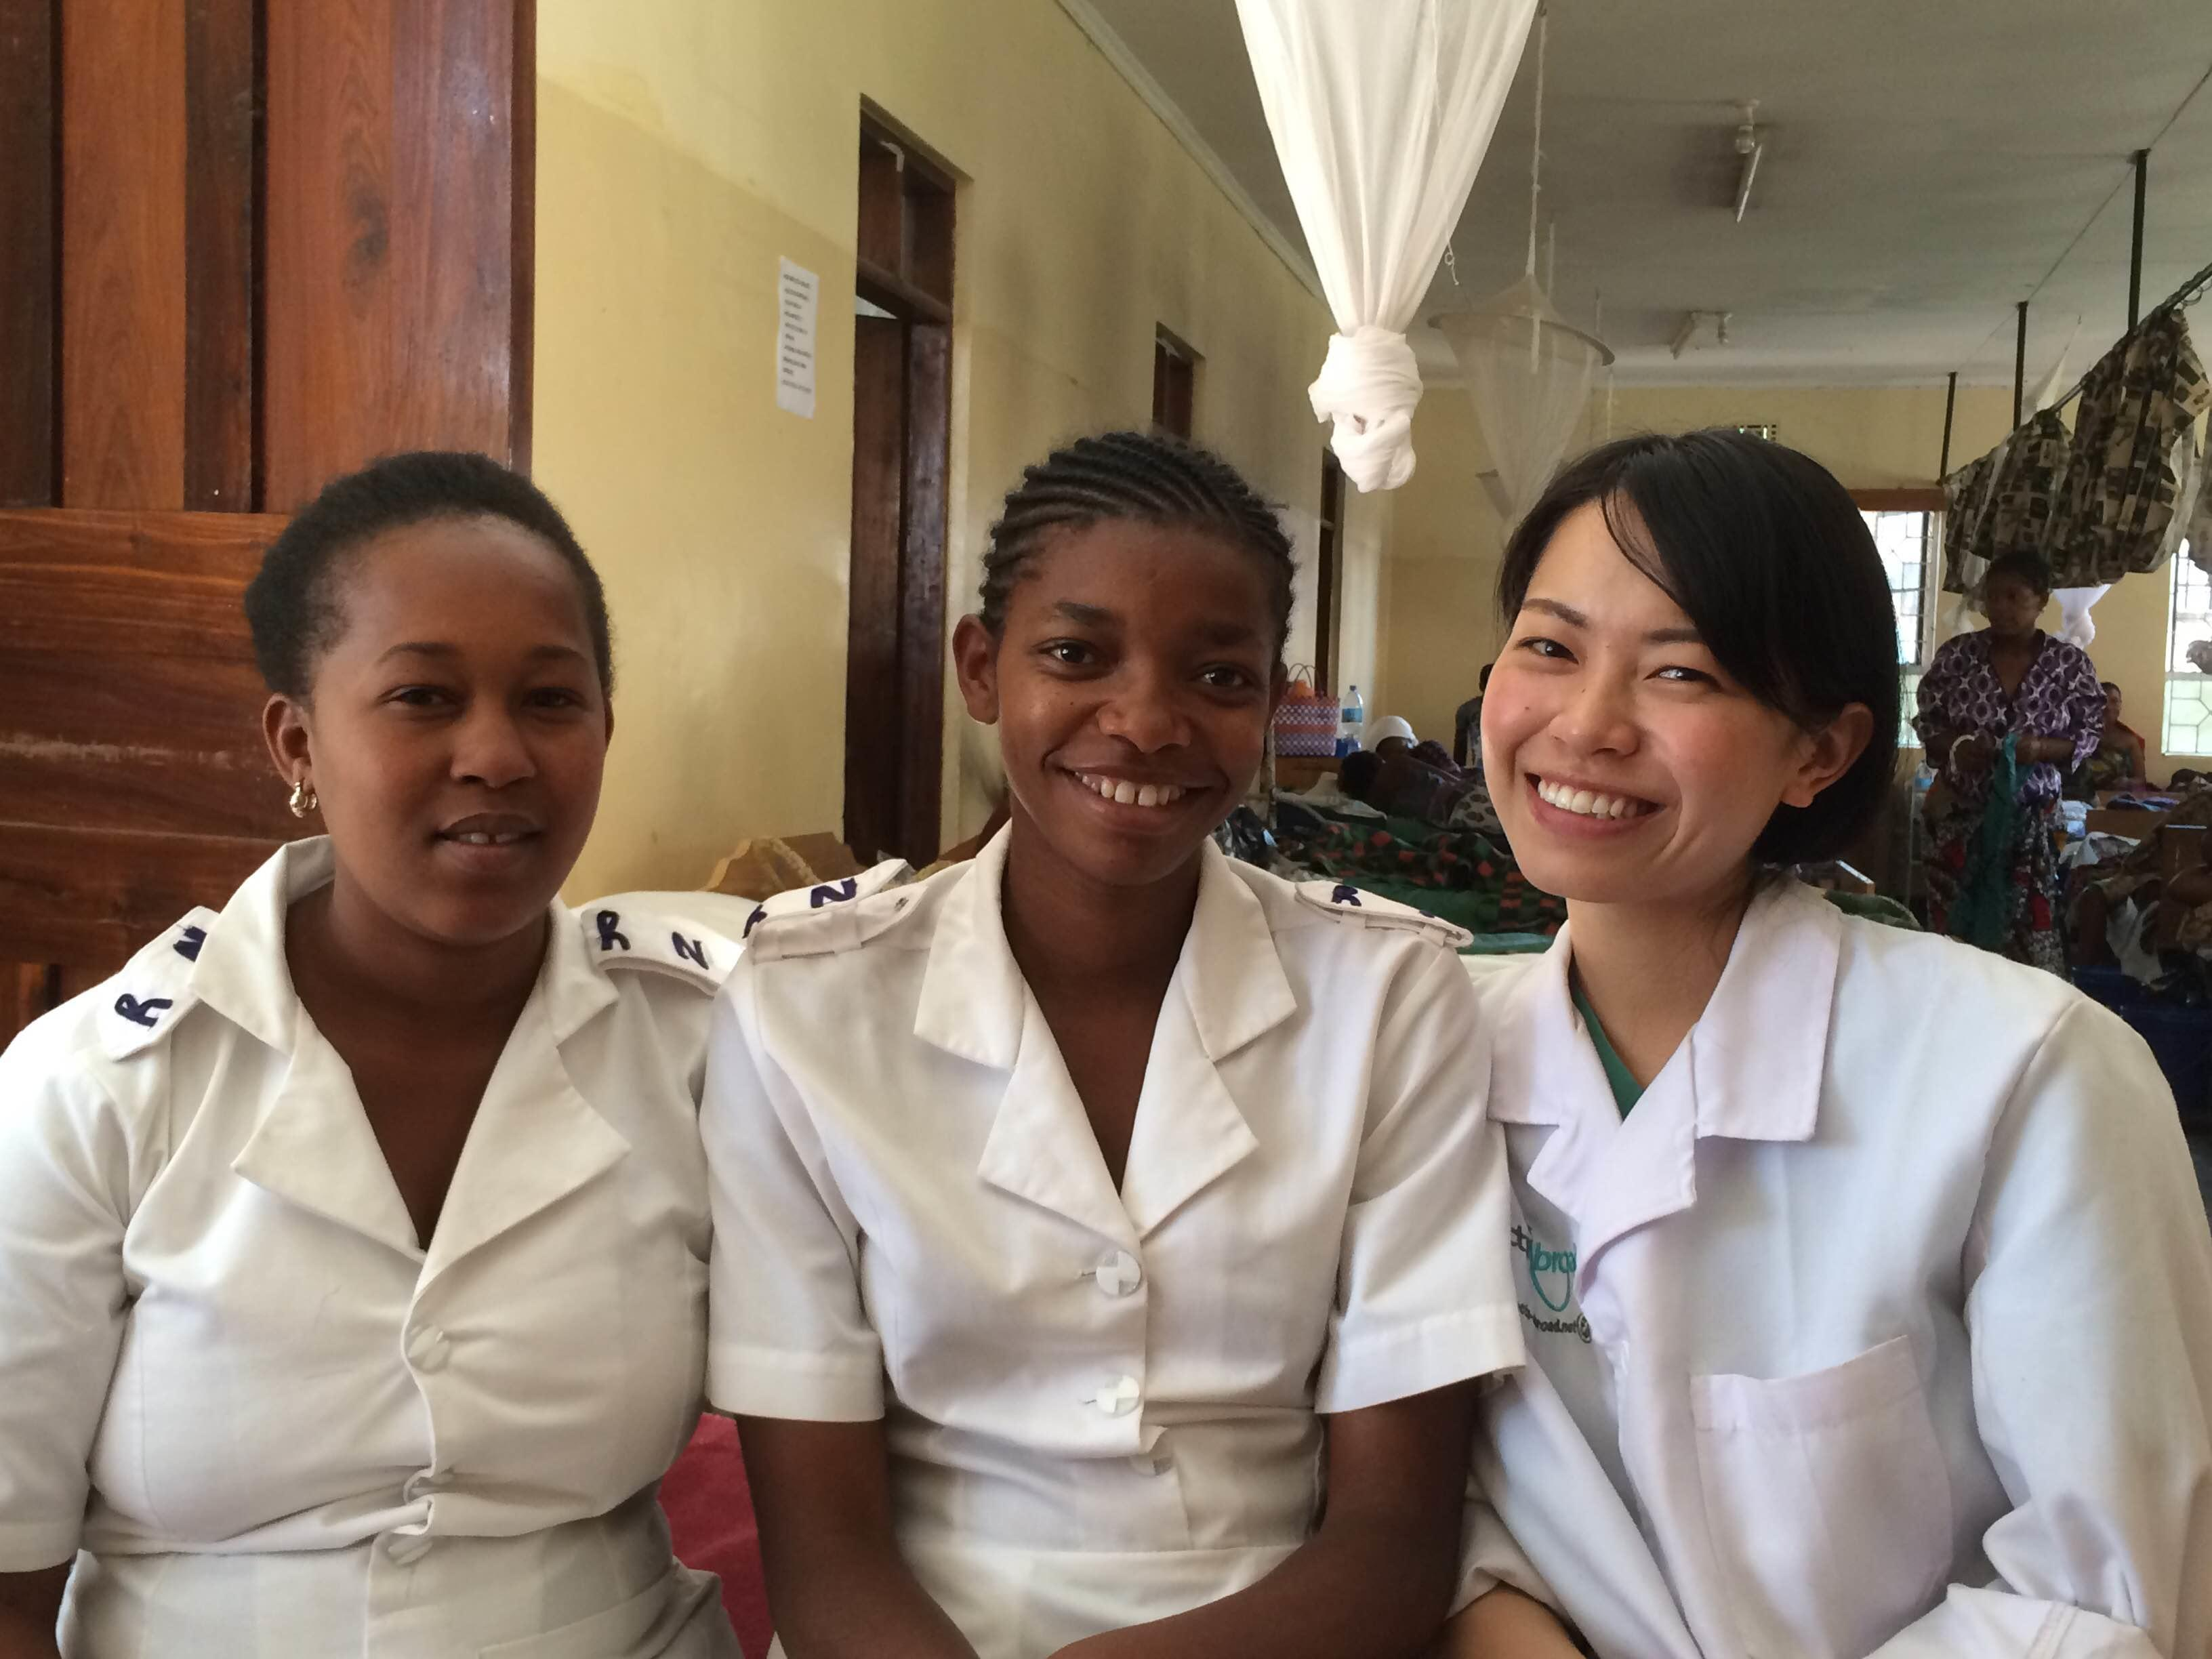 A student doing a Nursing internship abroad in Tanzania enjoys spending time with her local colleagues.